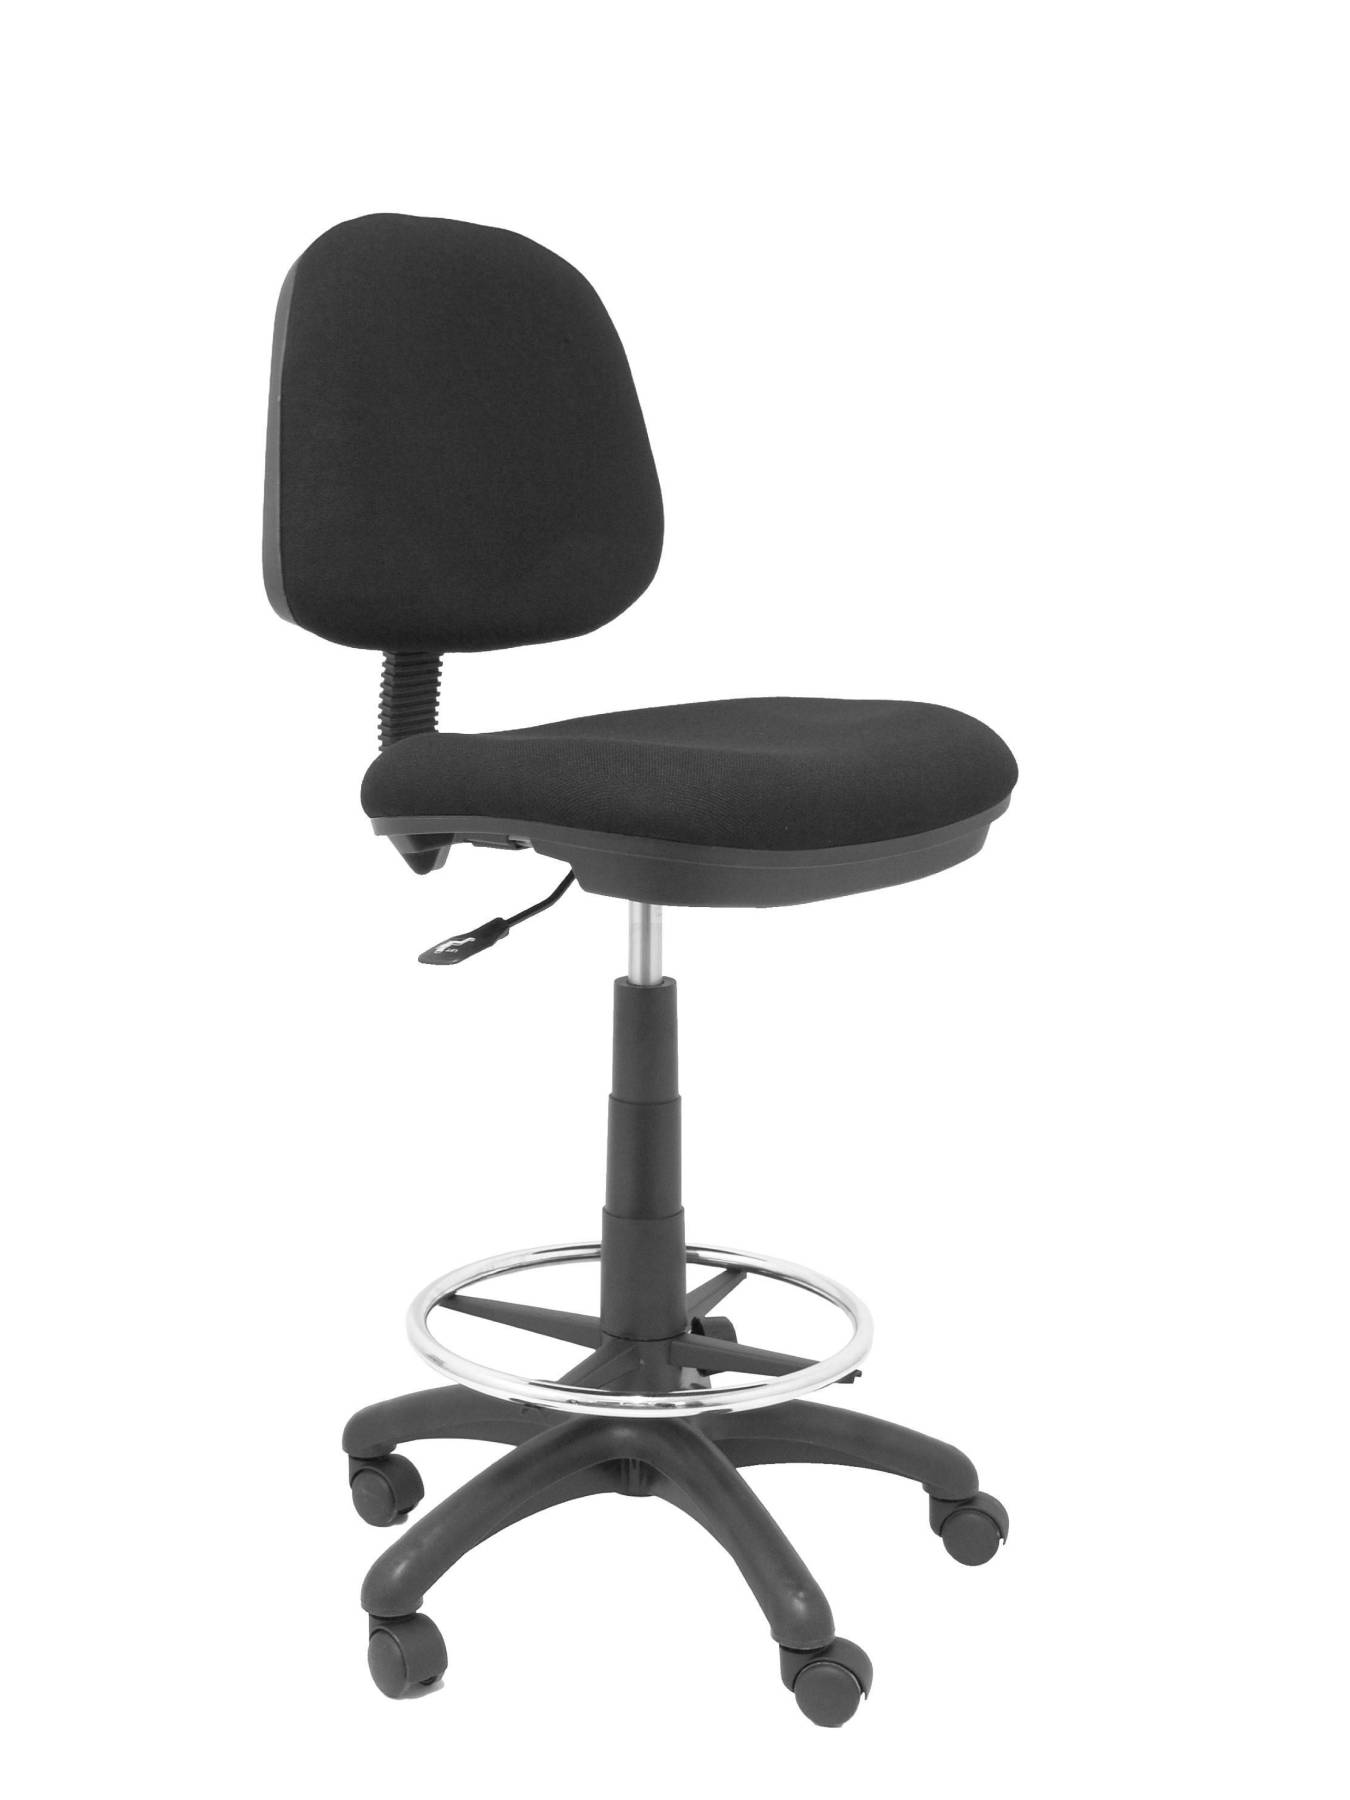 Stool Ergonomic Swivel And Dimmable In High Altitude With Hoop Foot Pegs Chrome (INCLUDED) Up Seat And Backstop Upholstery